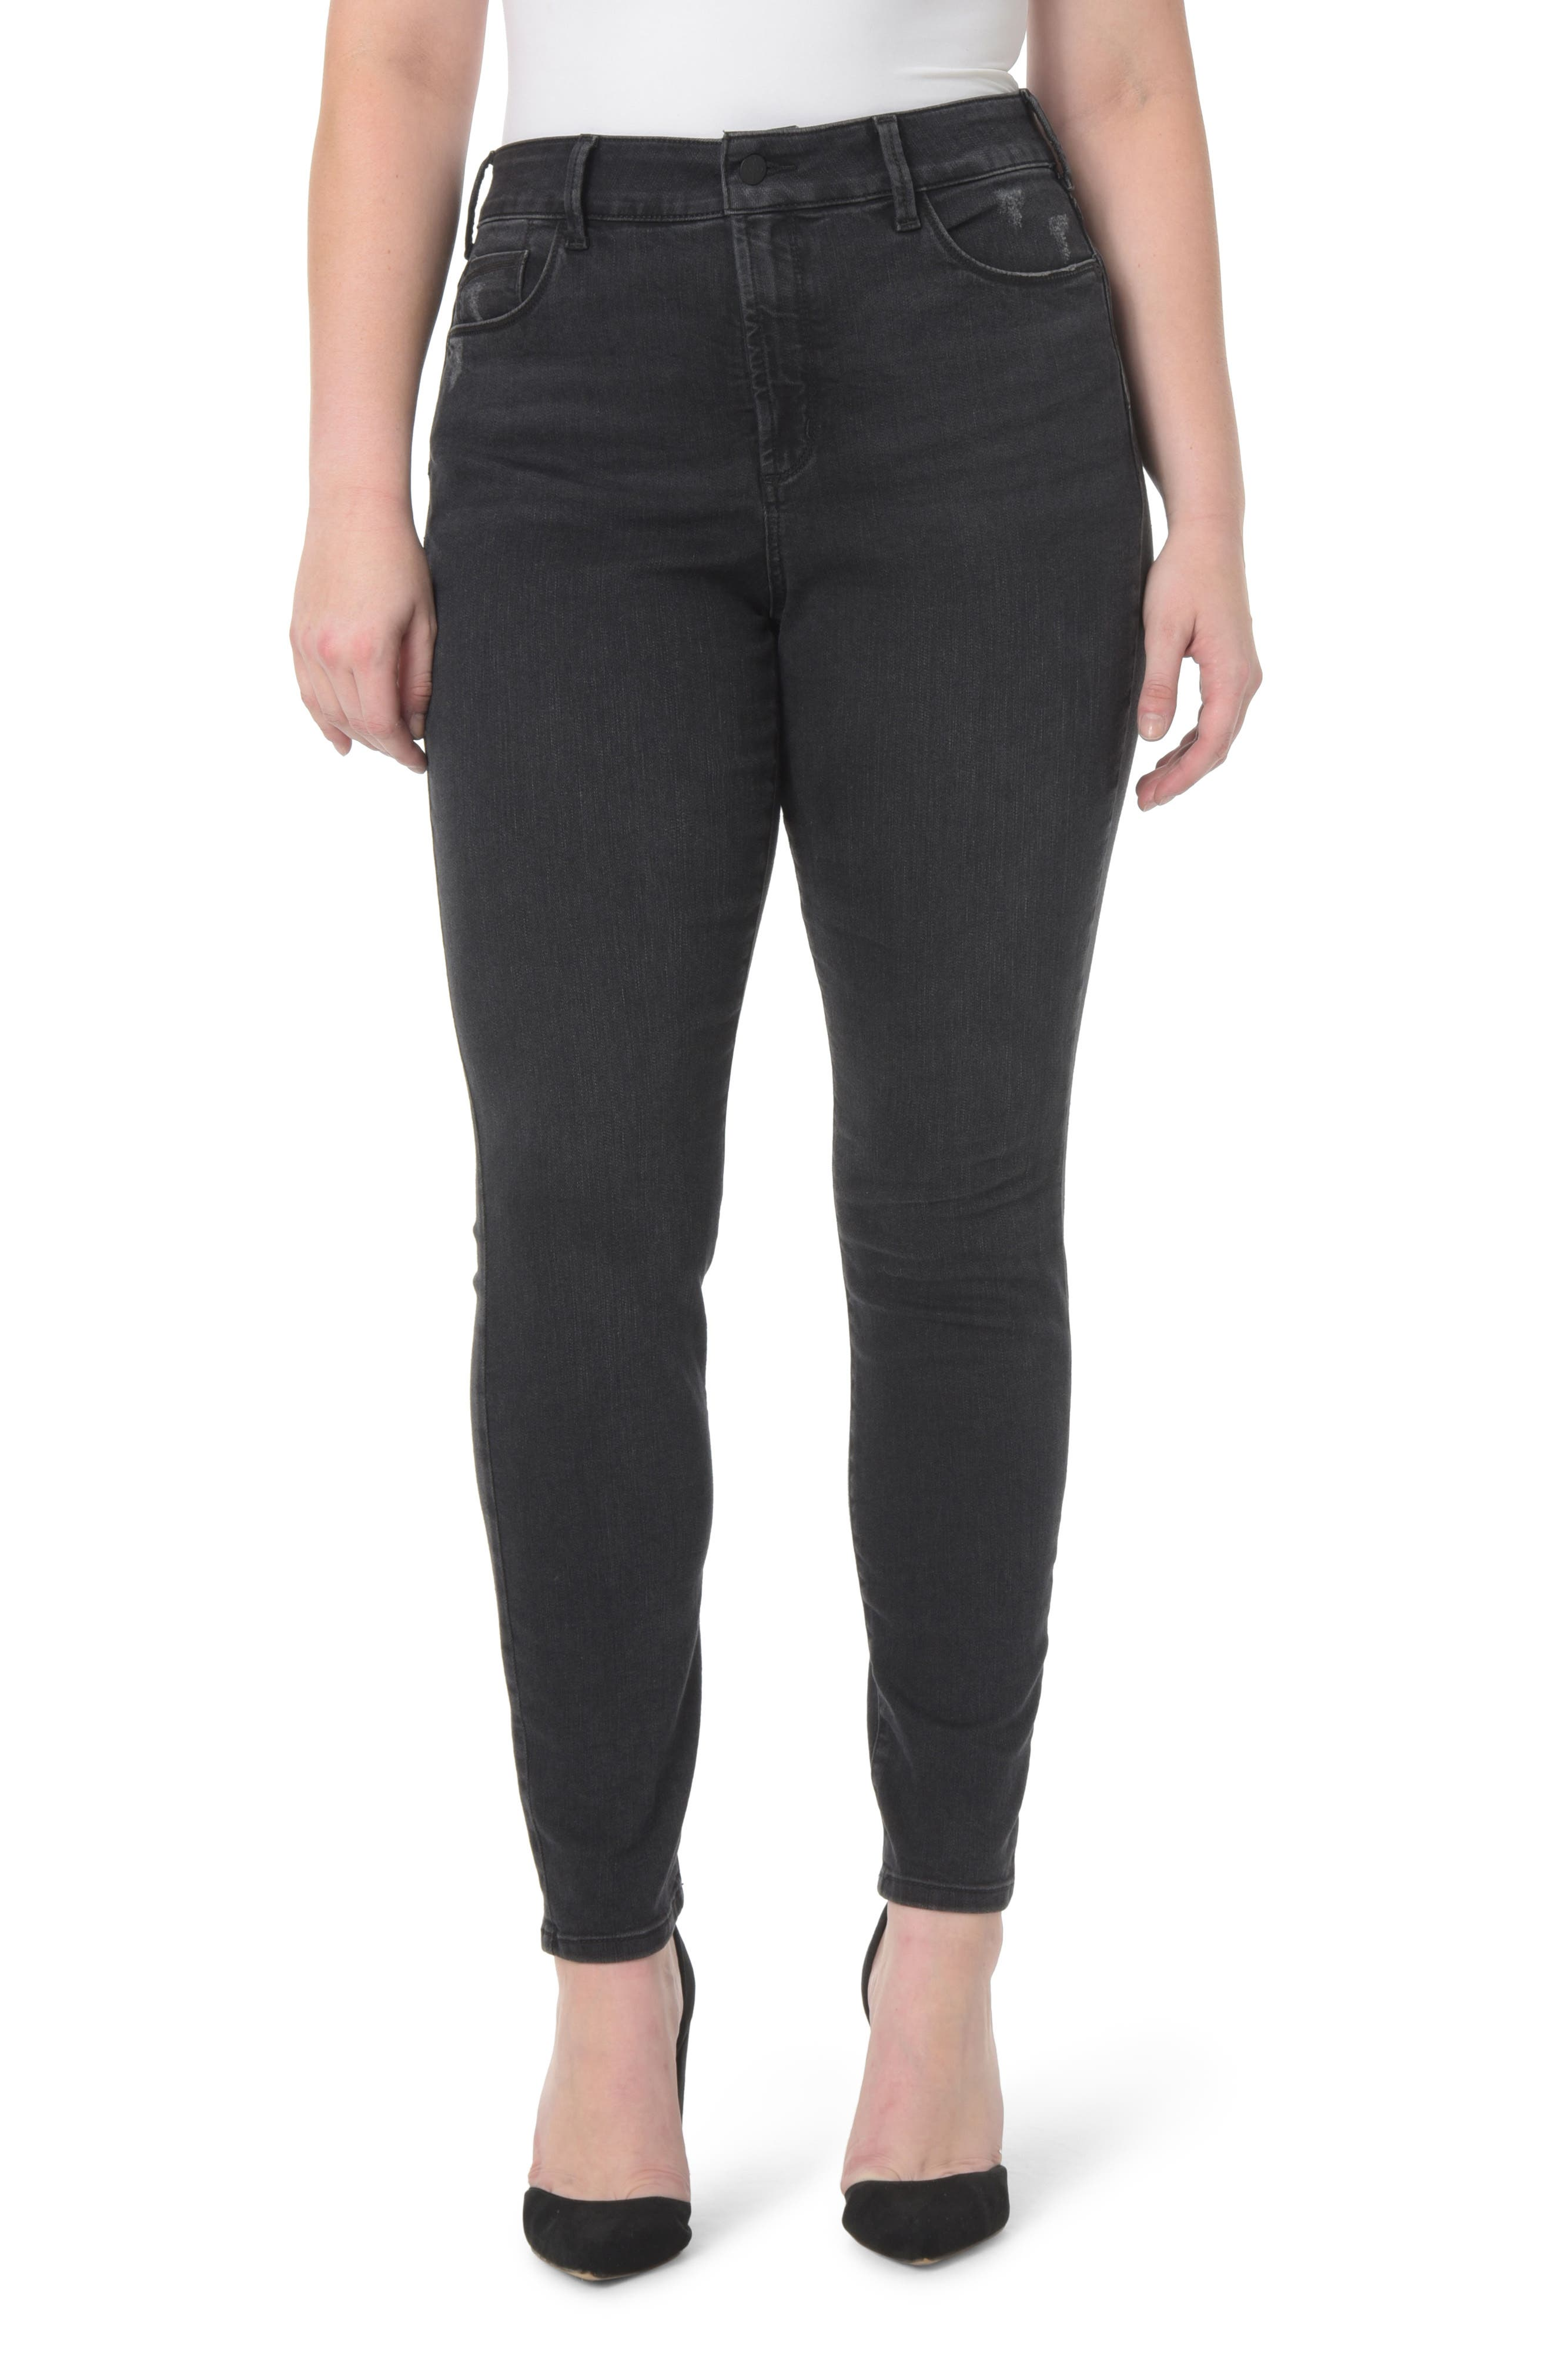 Alina Uplift Stretch Skinny Jeans,                         Main,                         color, Campaign